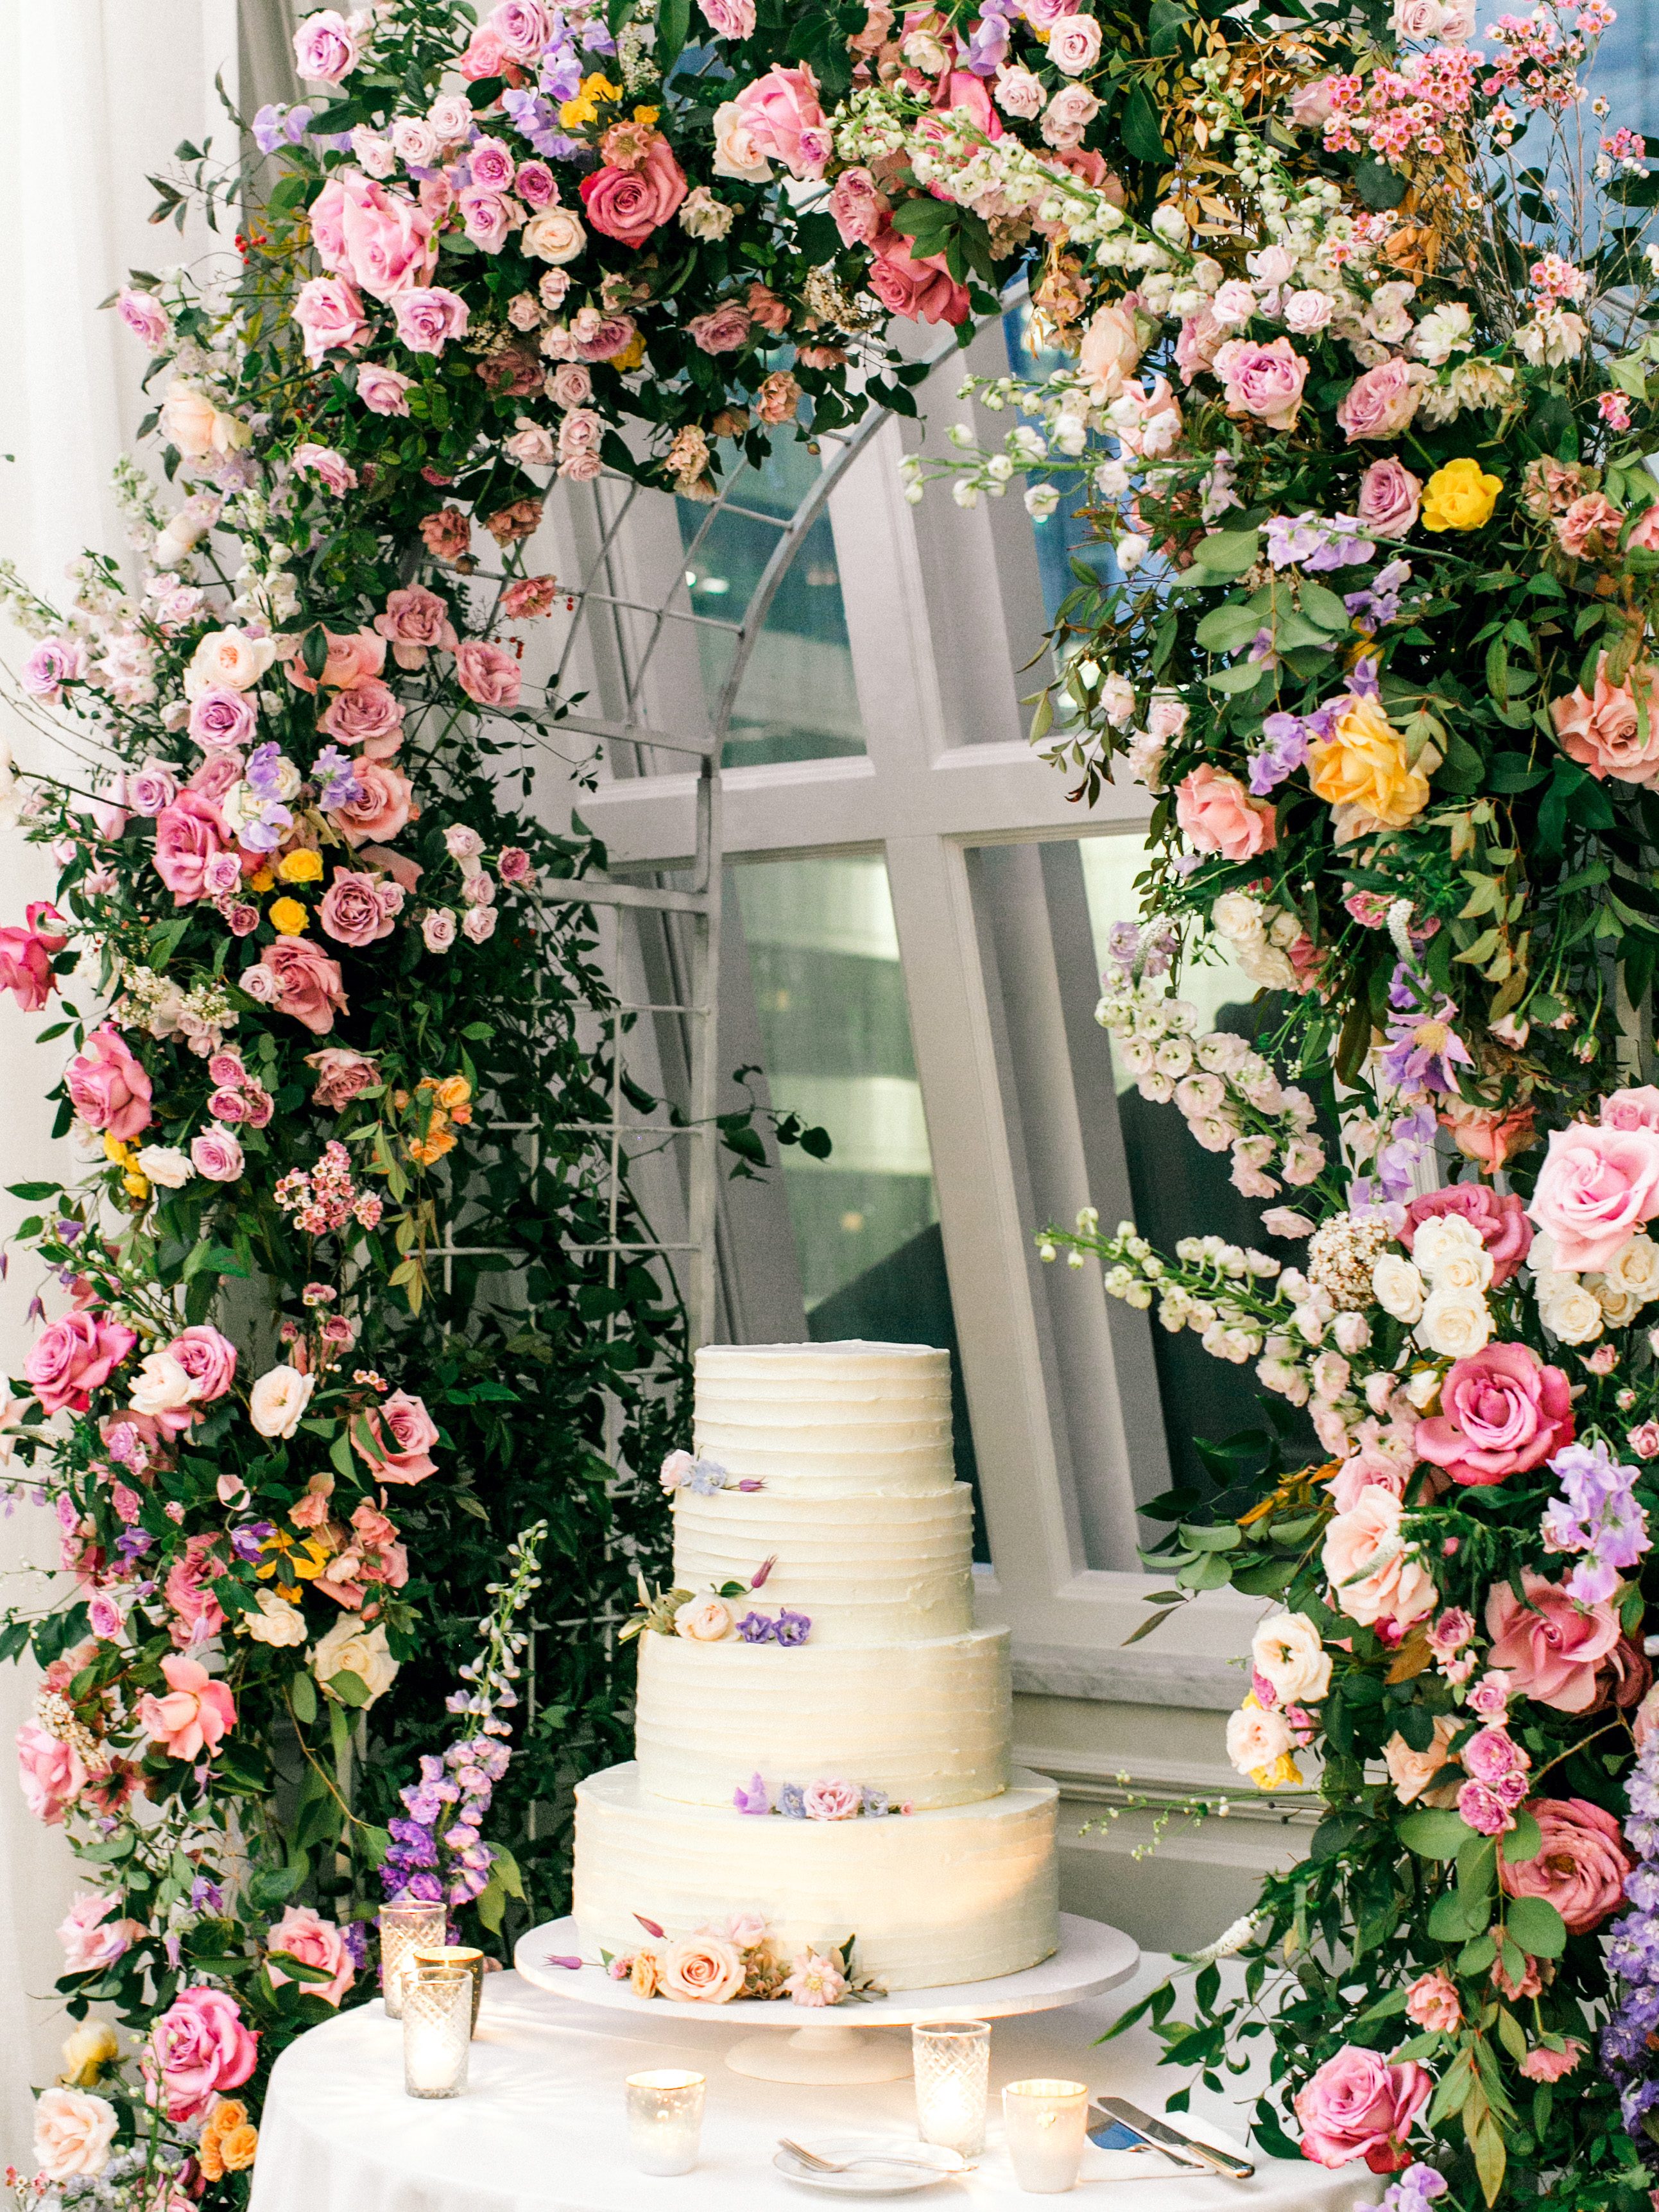 stephanie joe wedding cake and floral arch